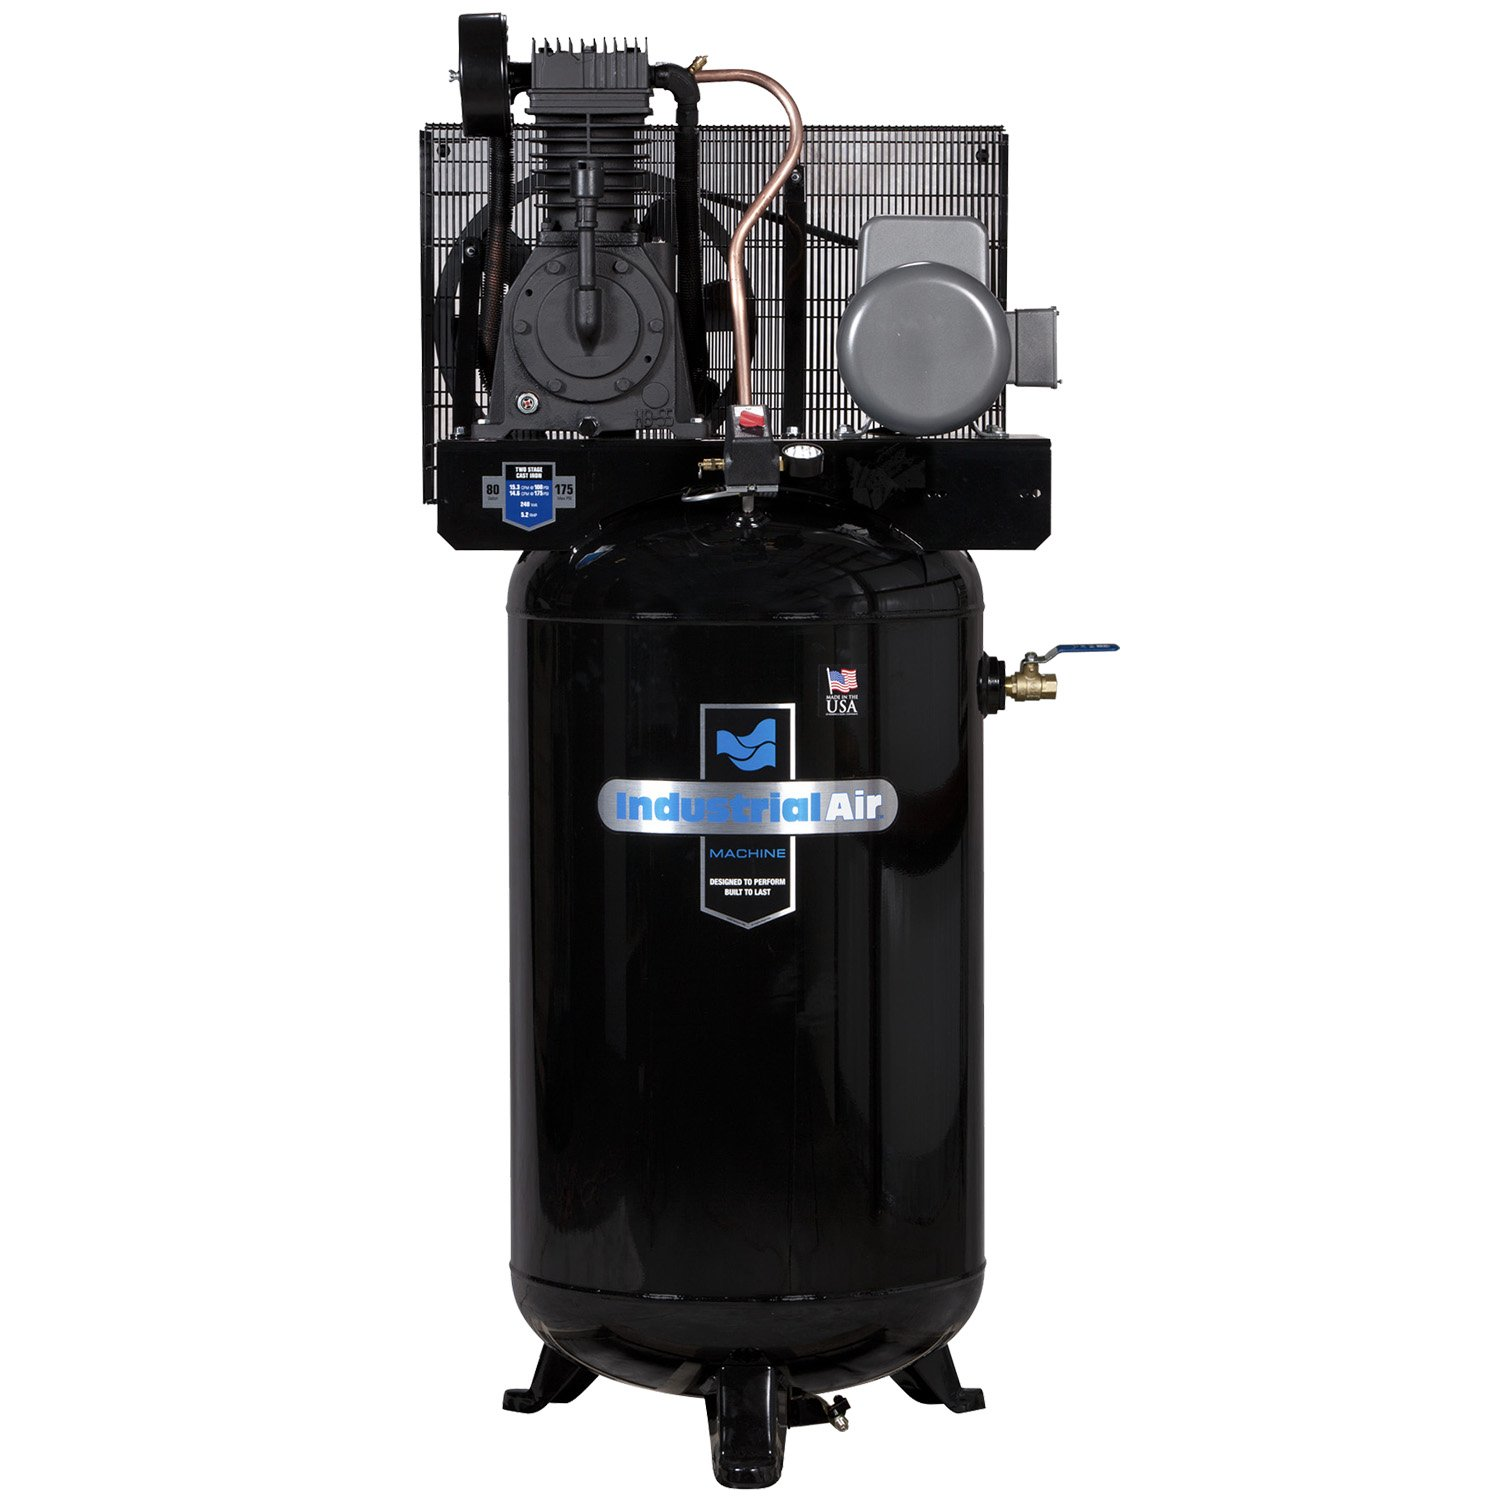 Industrial Air IV5008055 Vertical 80 gallon Two Stage Cast Iron Industrial Air Compressor - Air Compressors - Amazon.com